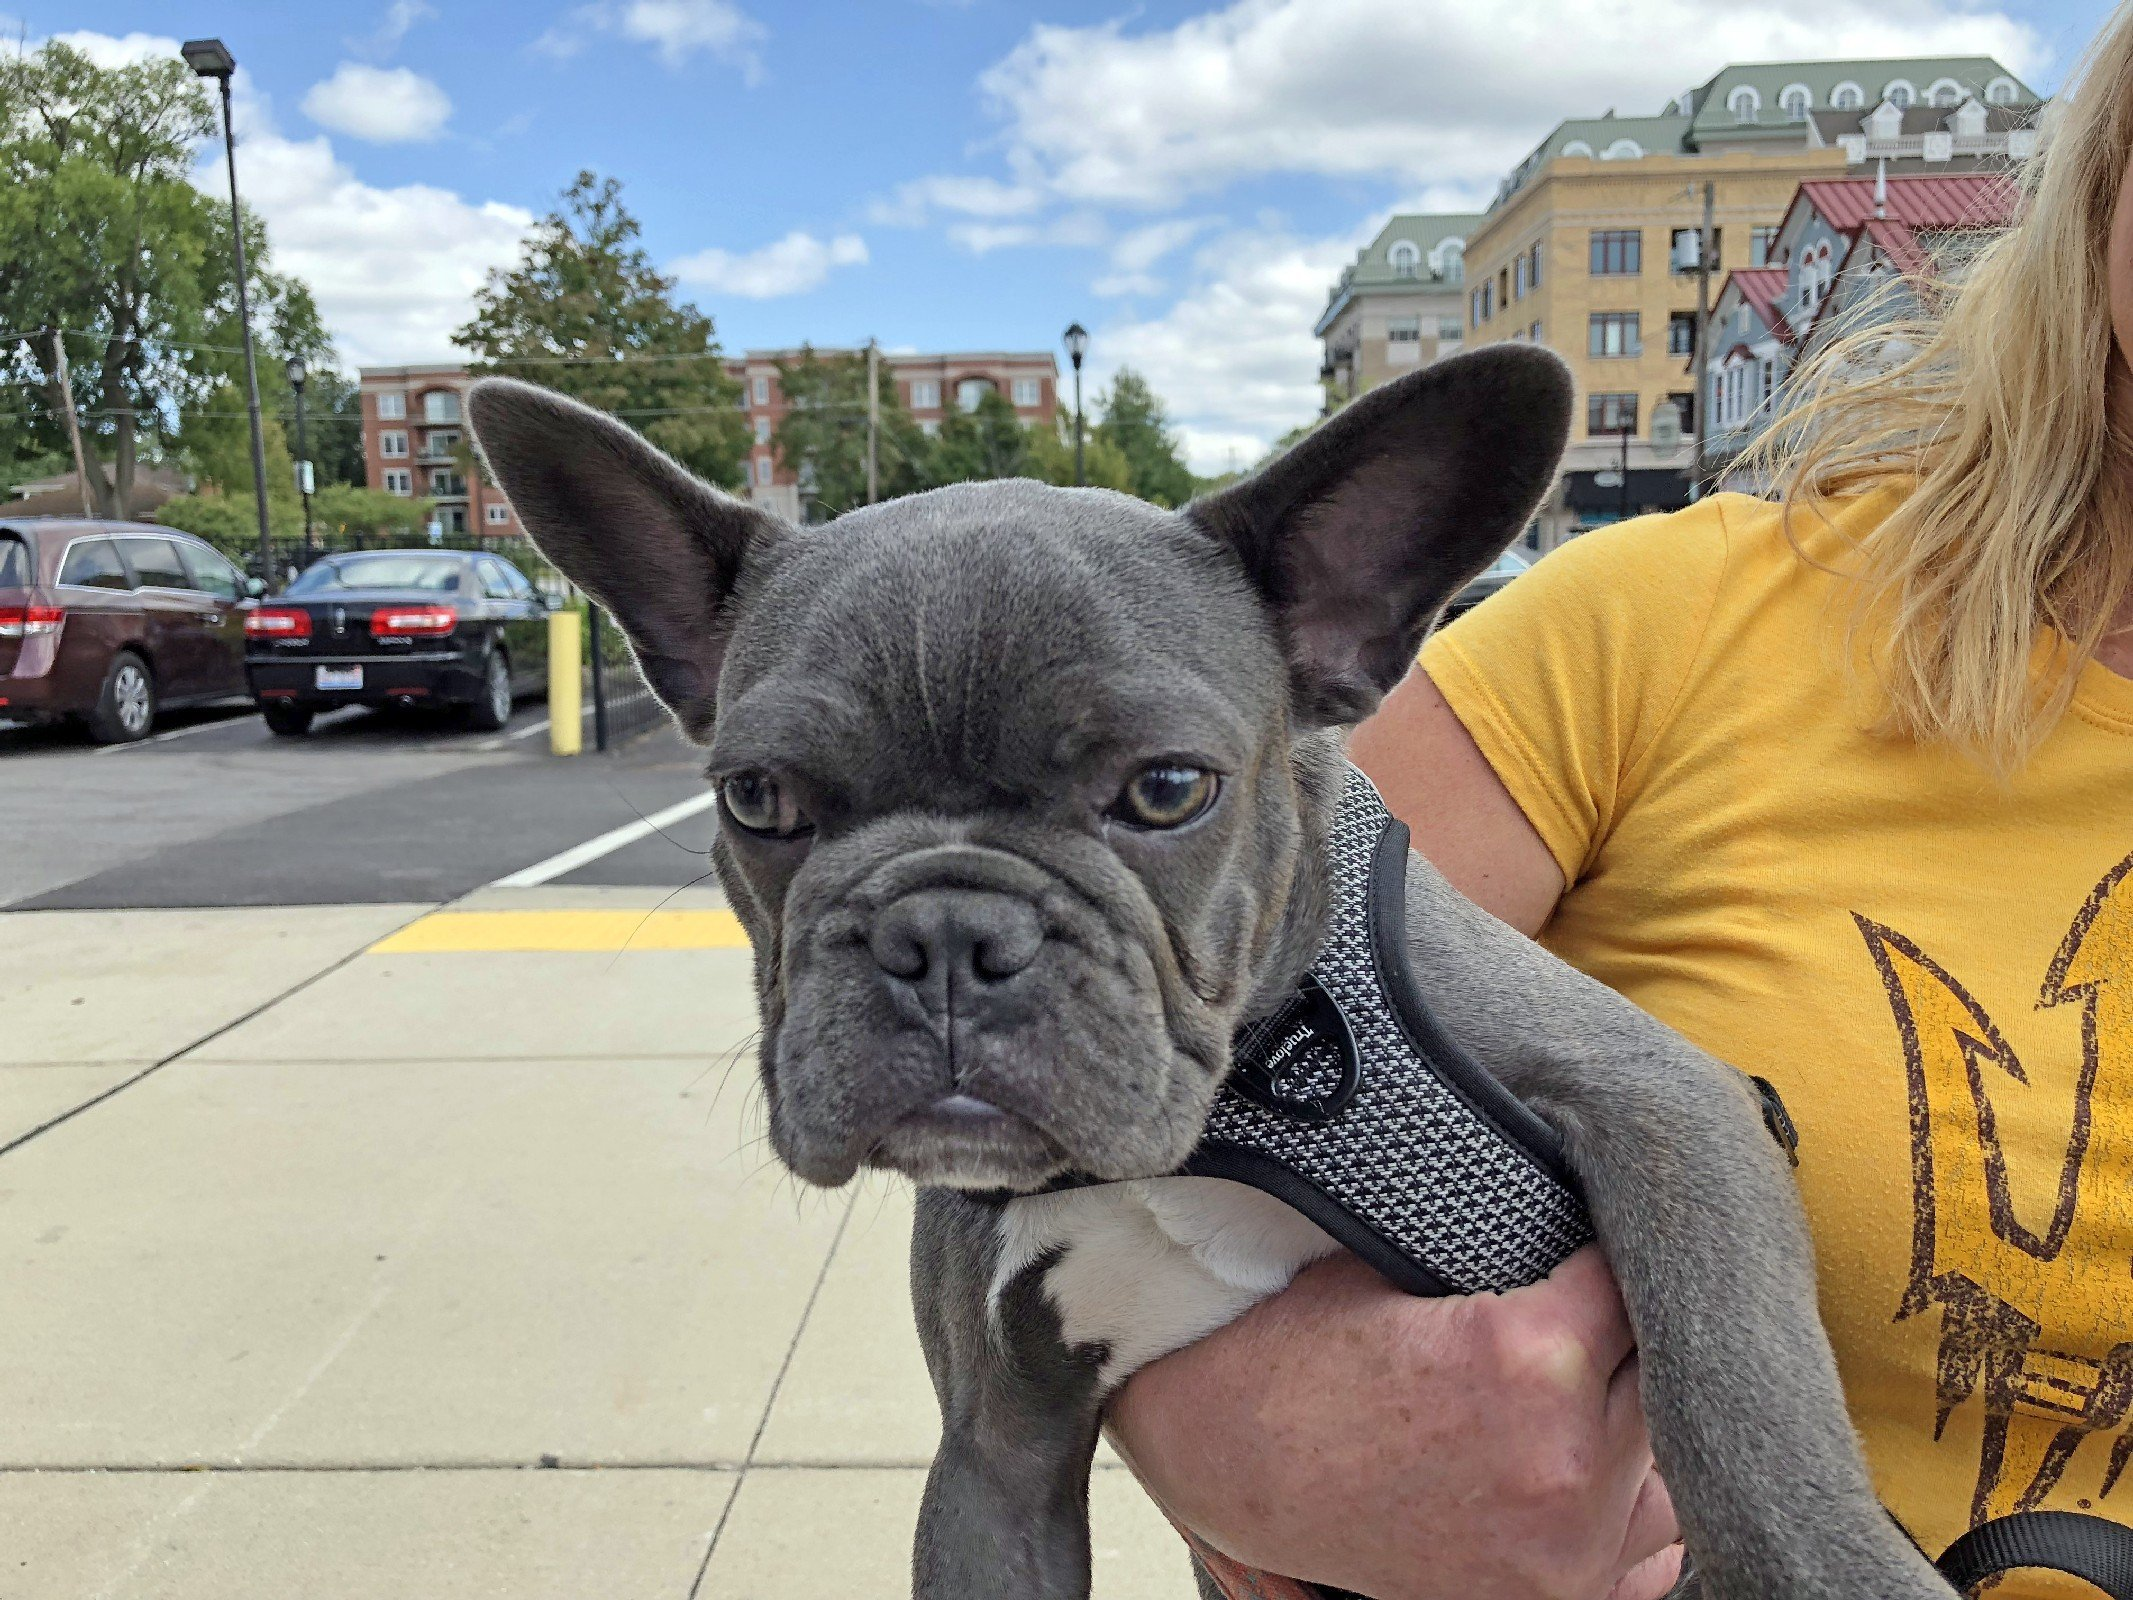 French Bulldog in Palatine, IL by Jets Like Taxis